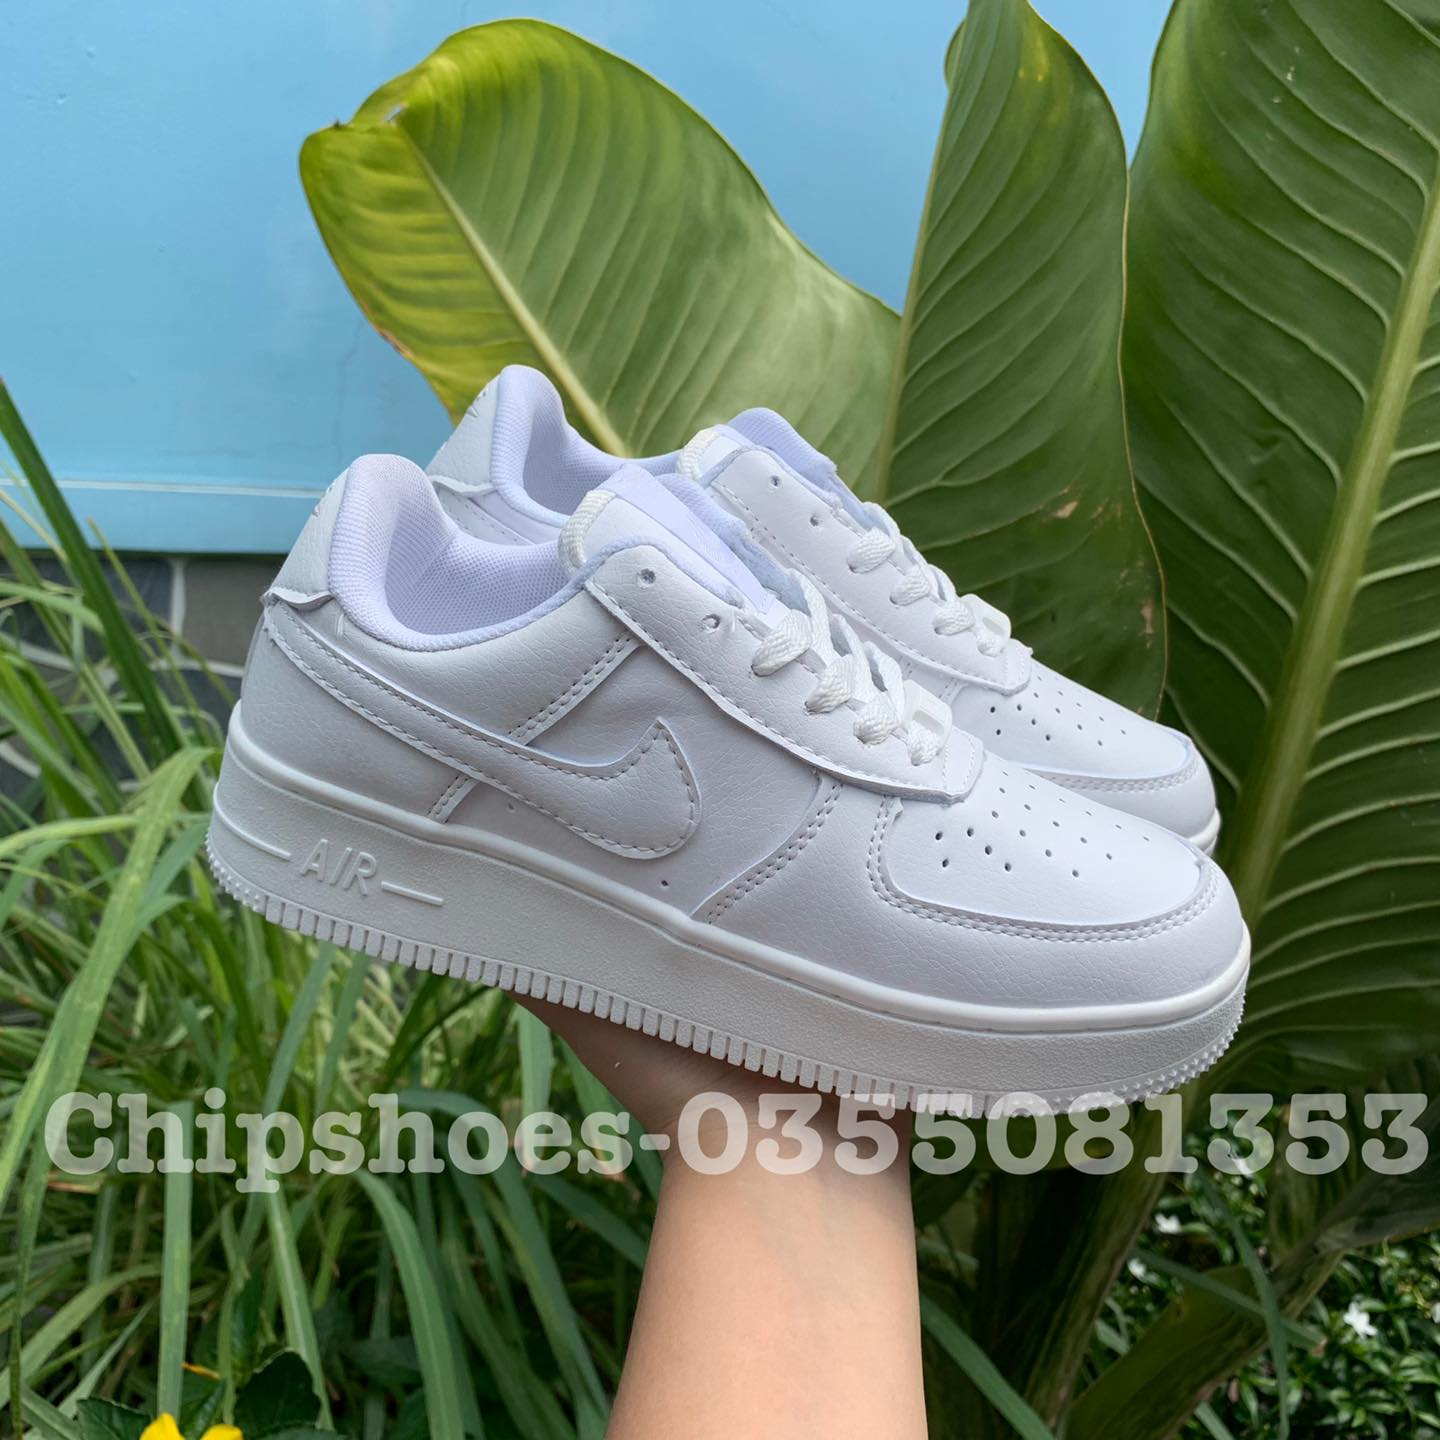 giày thể thao nike air for 1